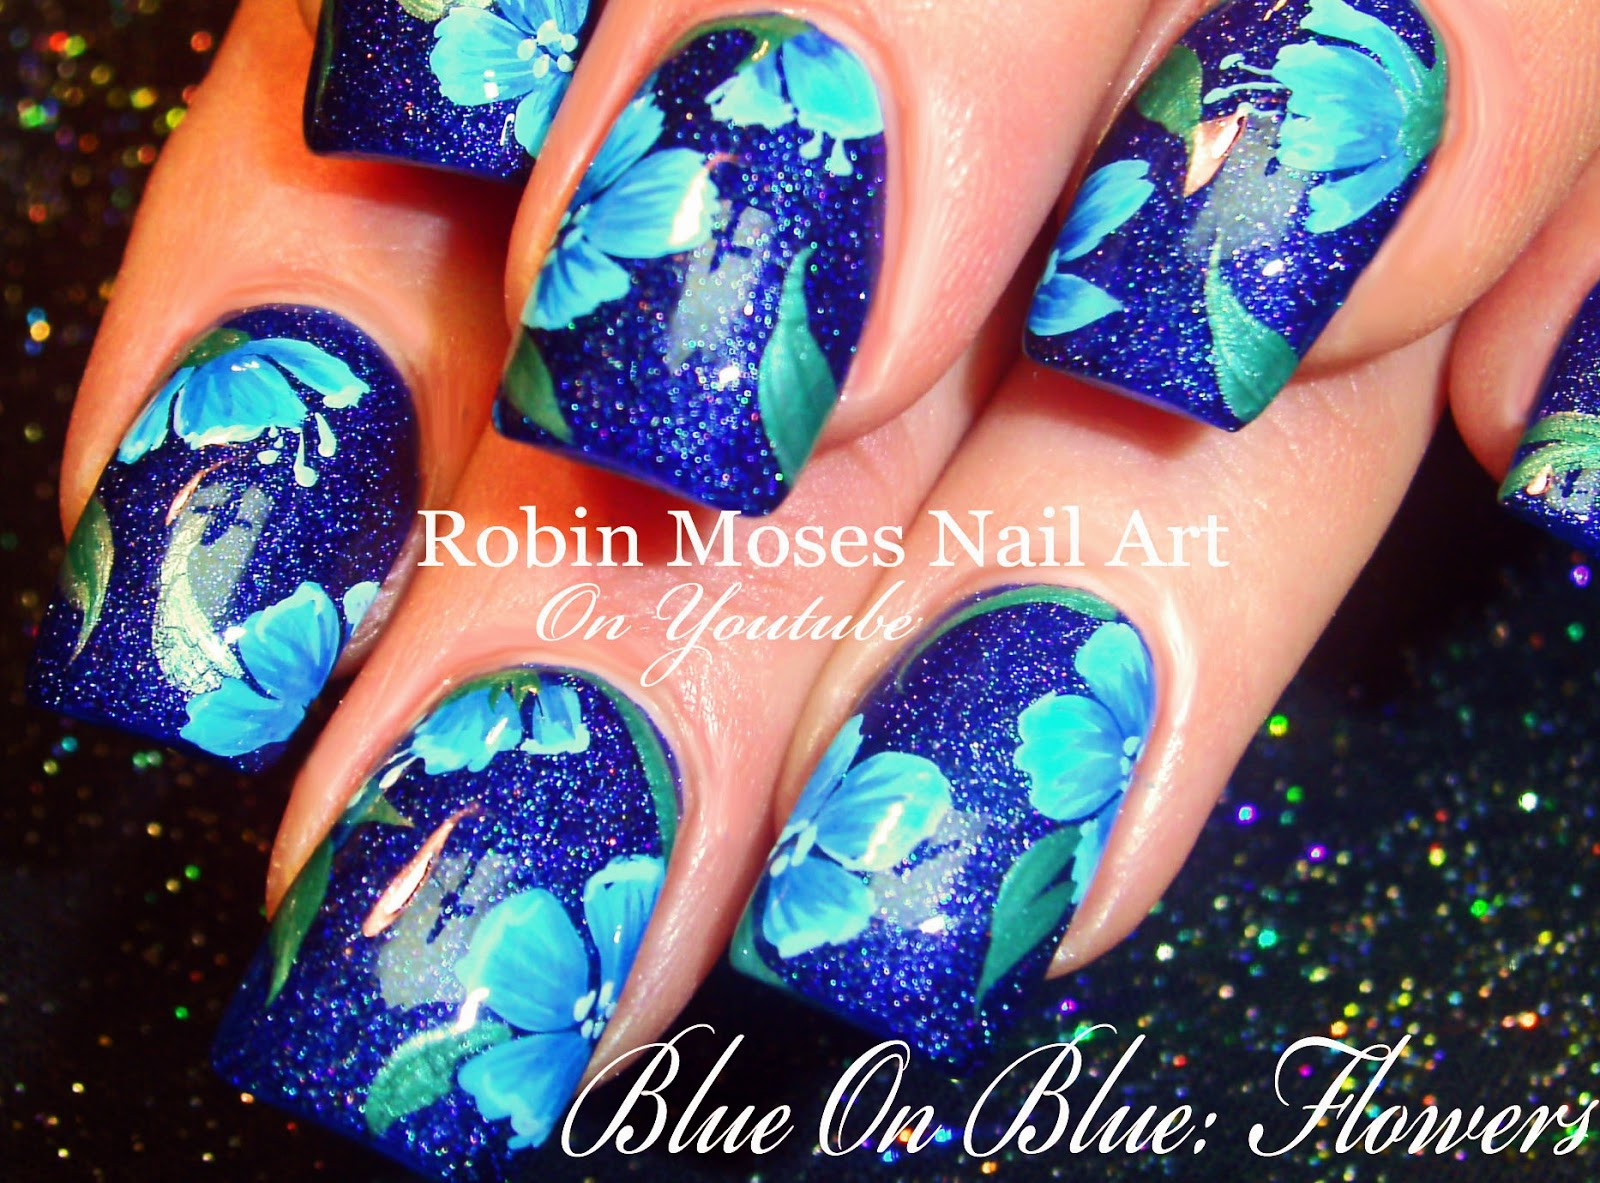 Nail Art By Robin Moses January 2016